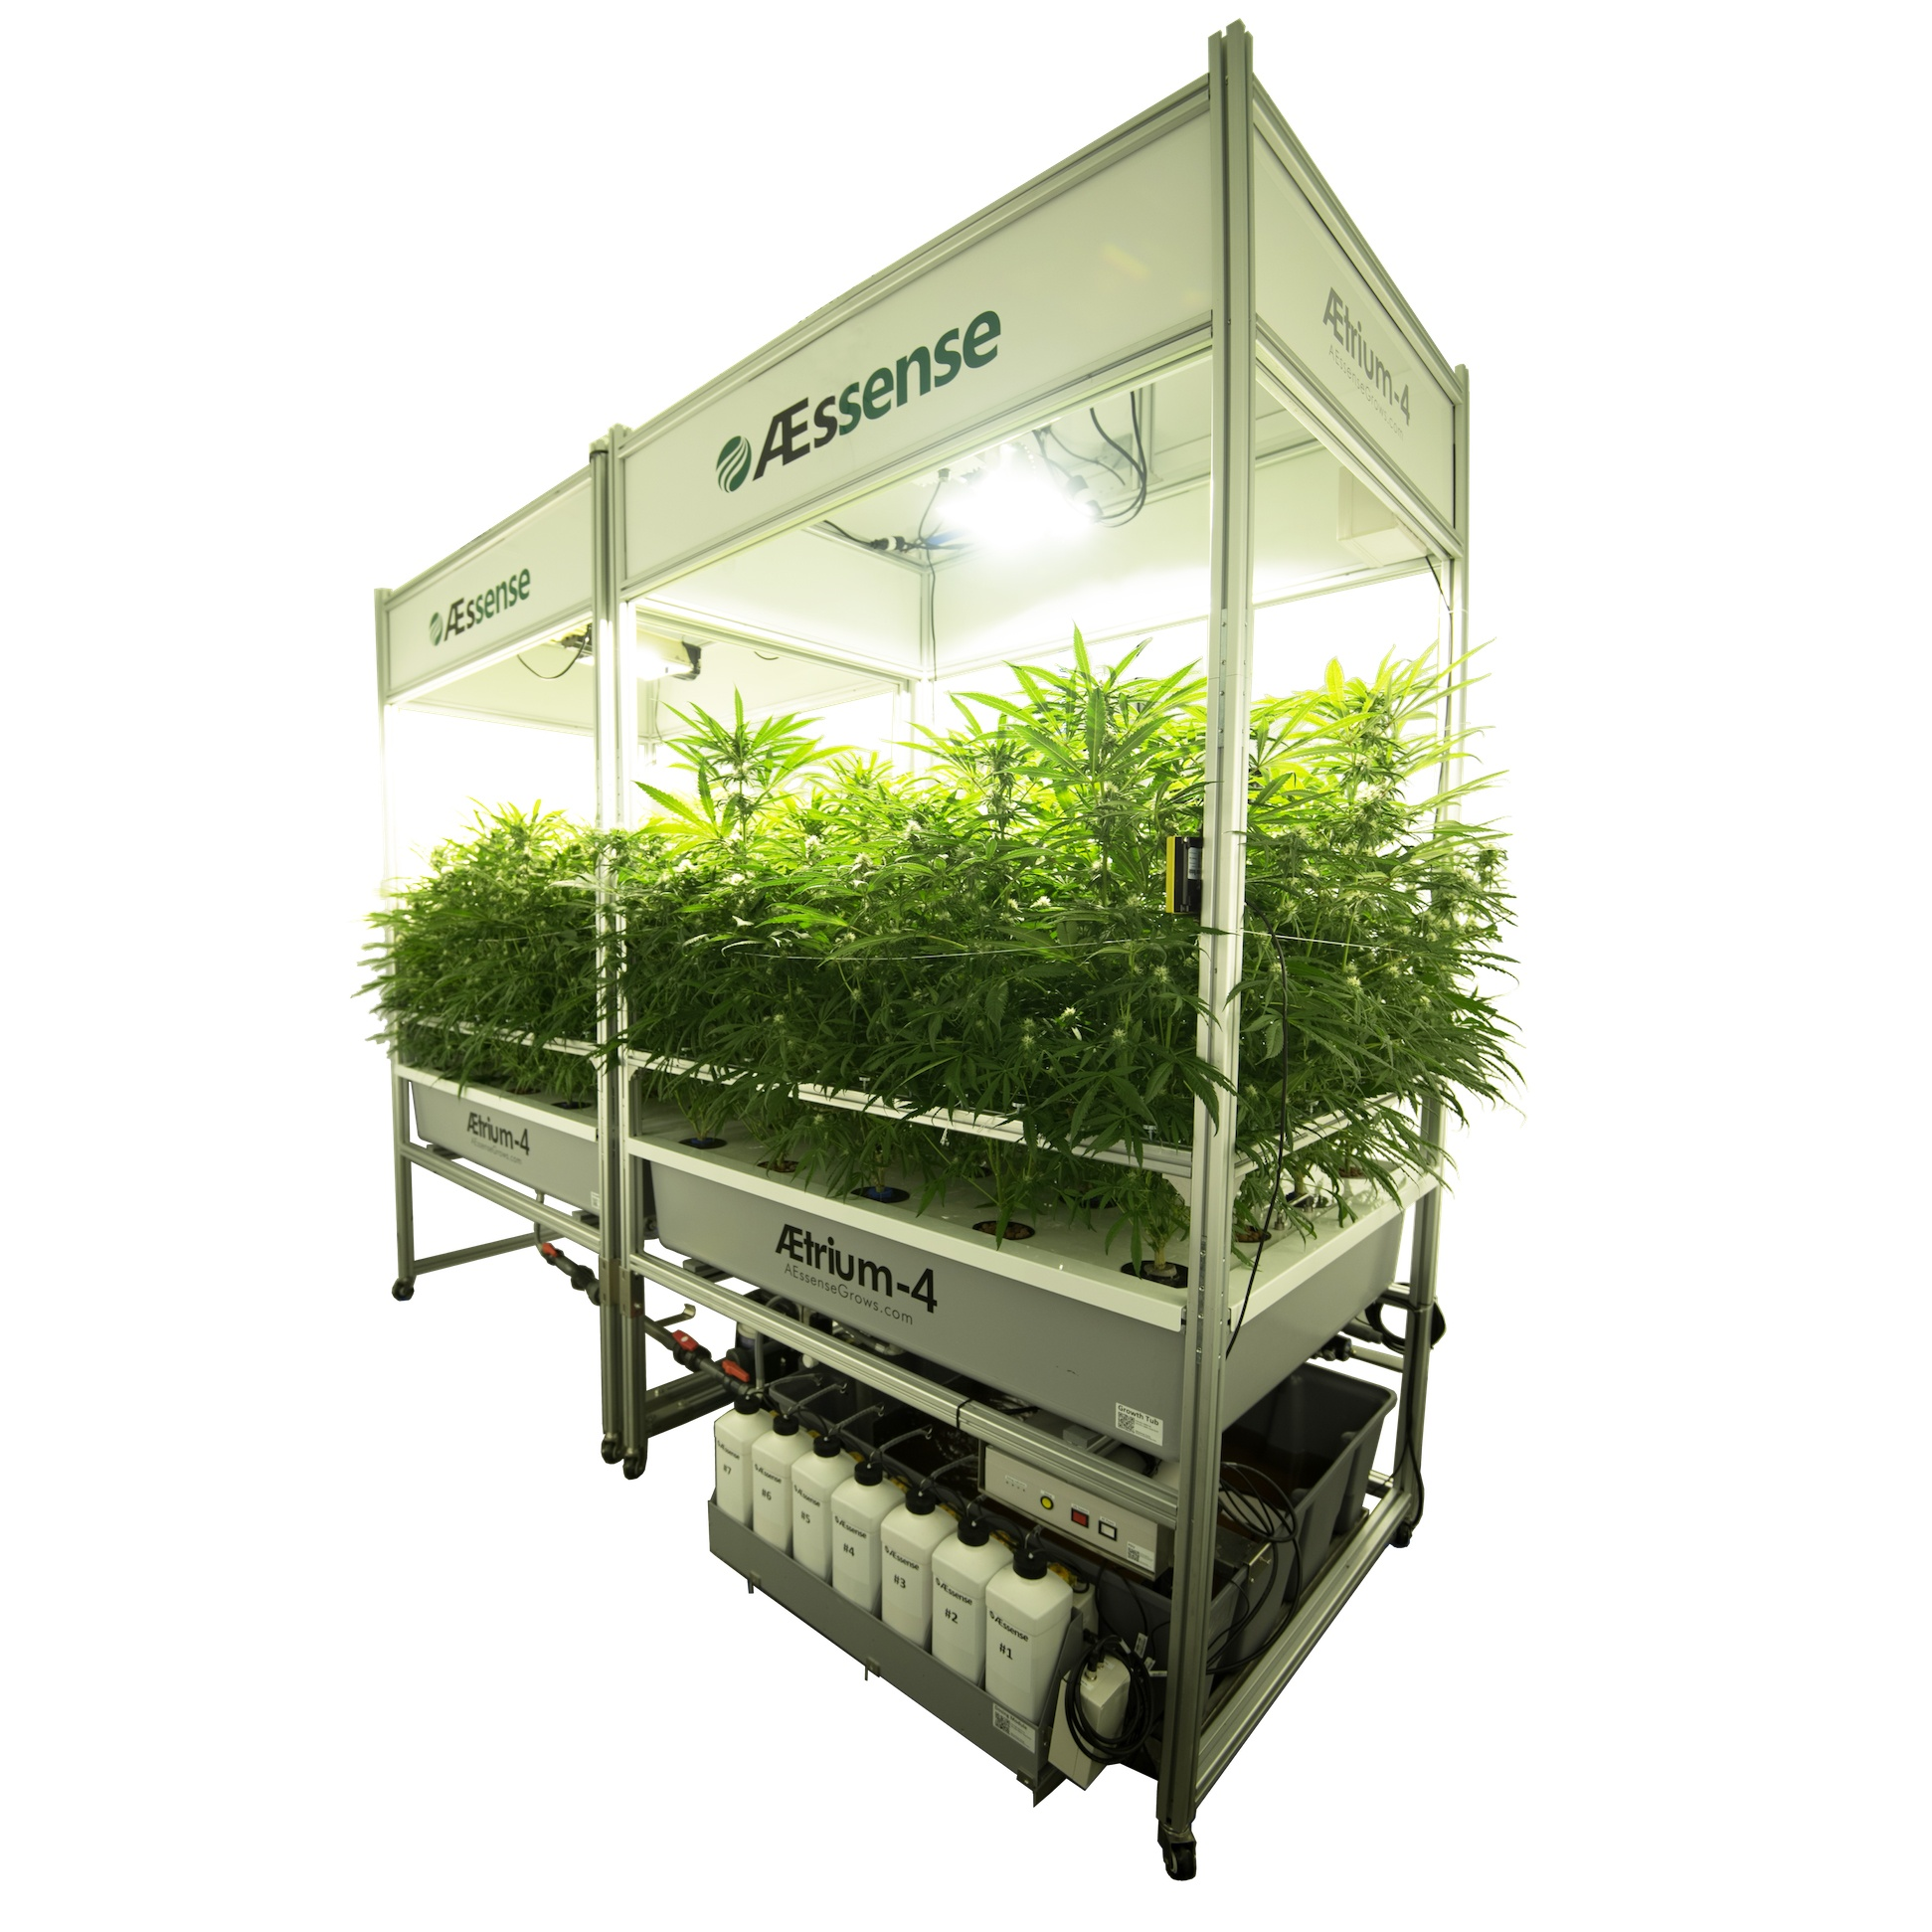 AEtrium-4 Automated Cultivation Bloom System